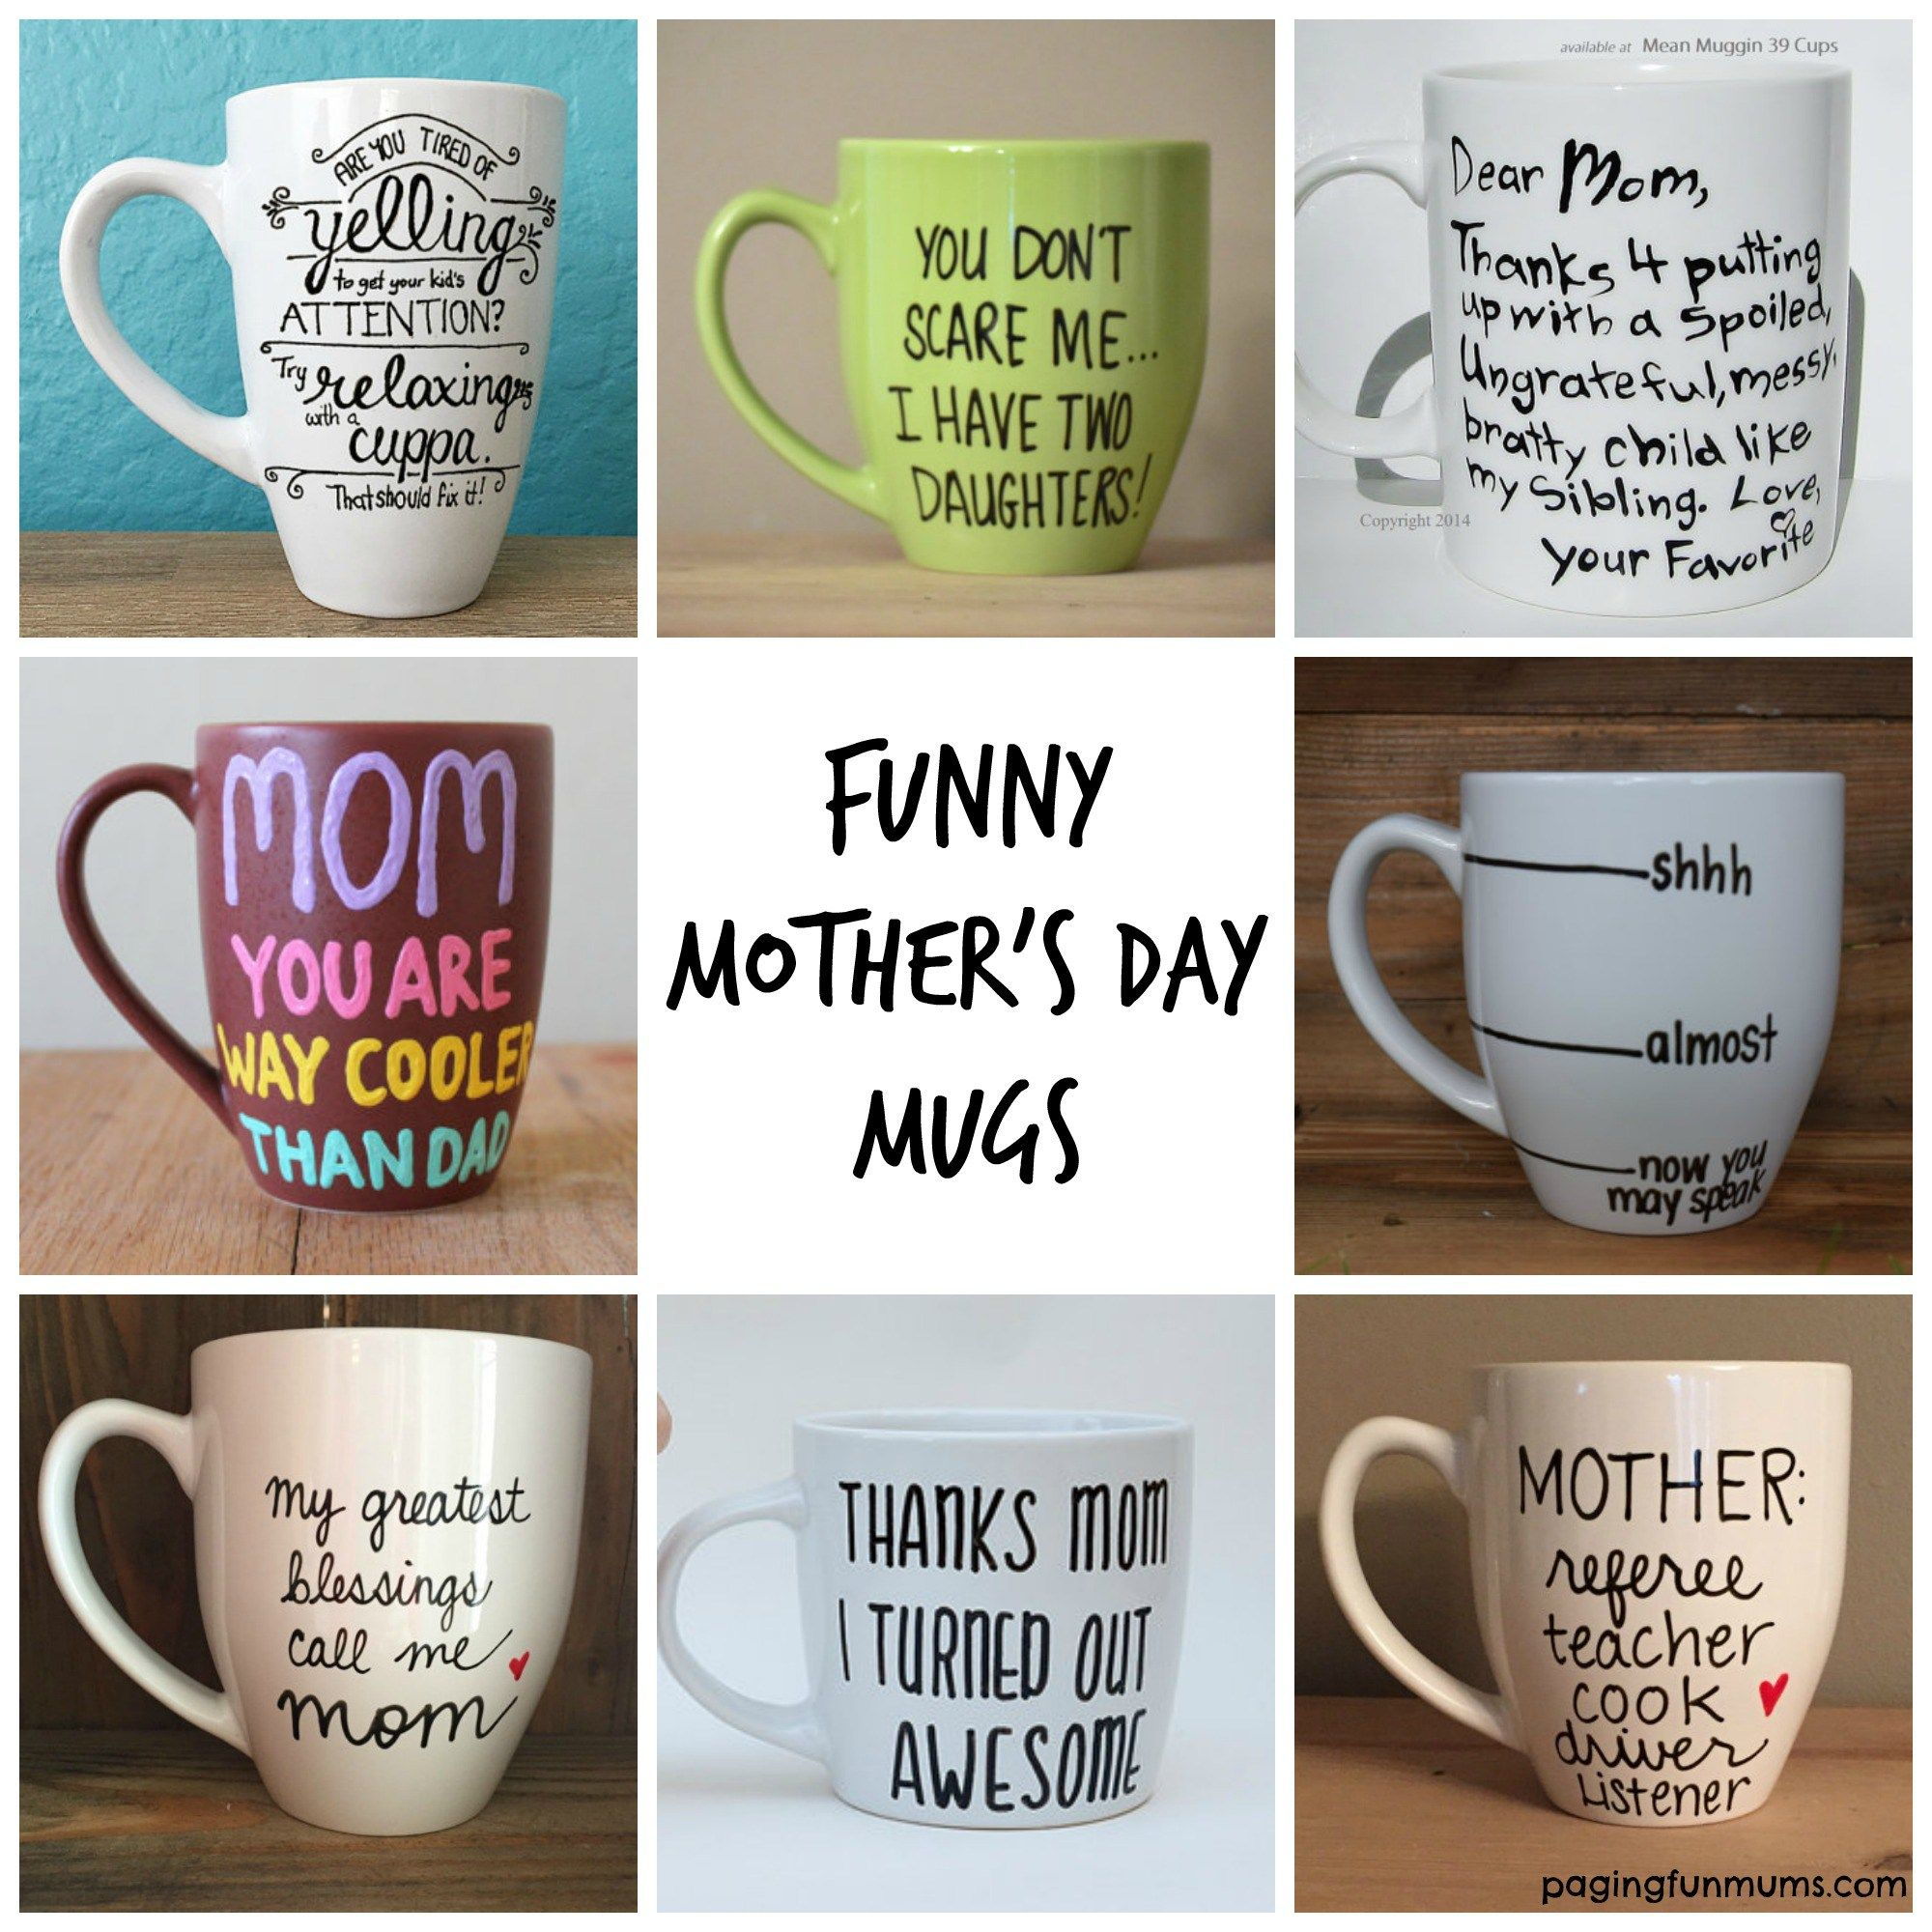 Funny+Mothers+Day+Mugs+Love+These+Fun+Gift+Ideas